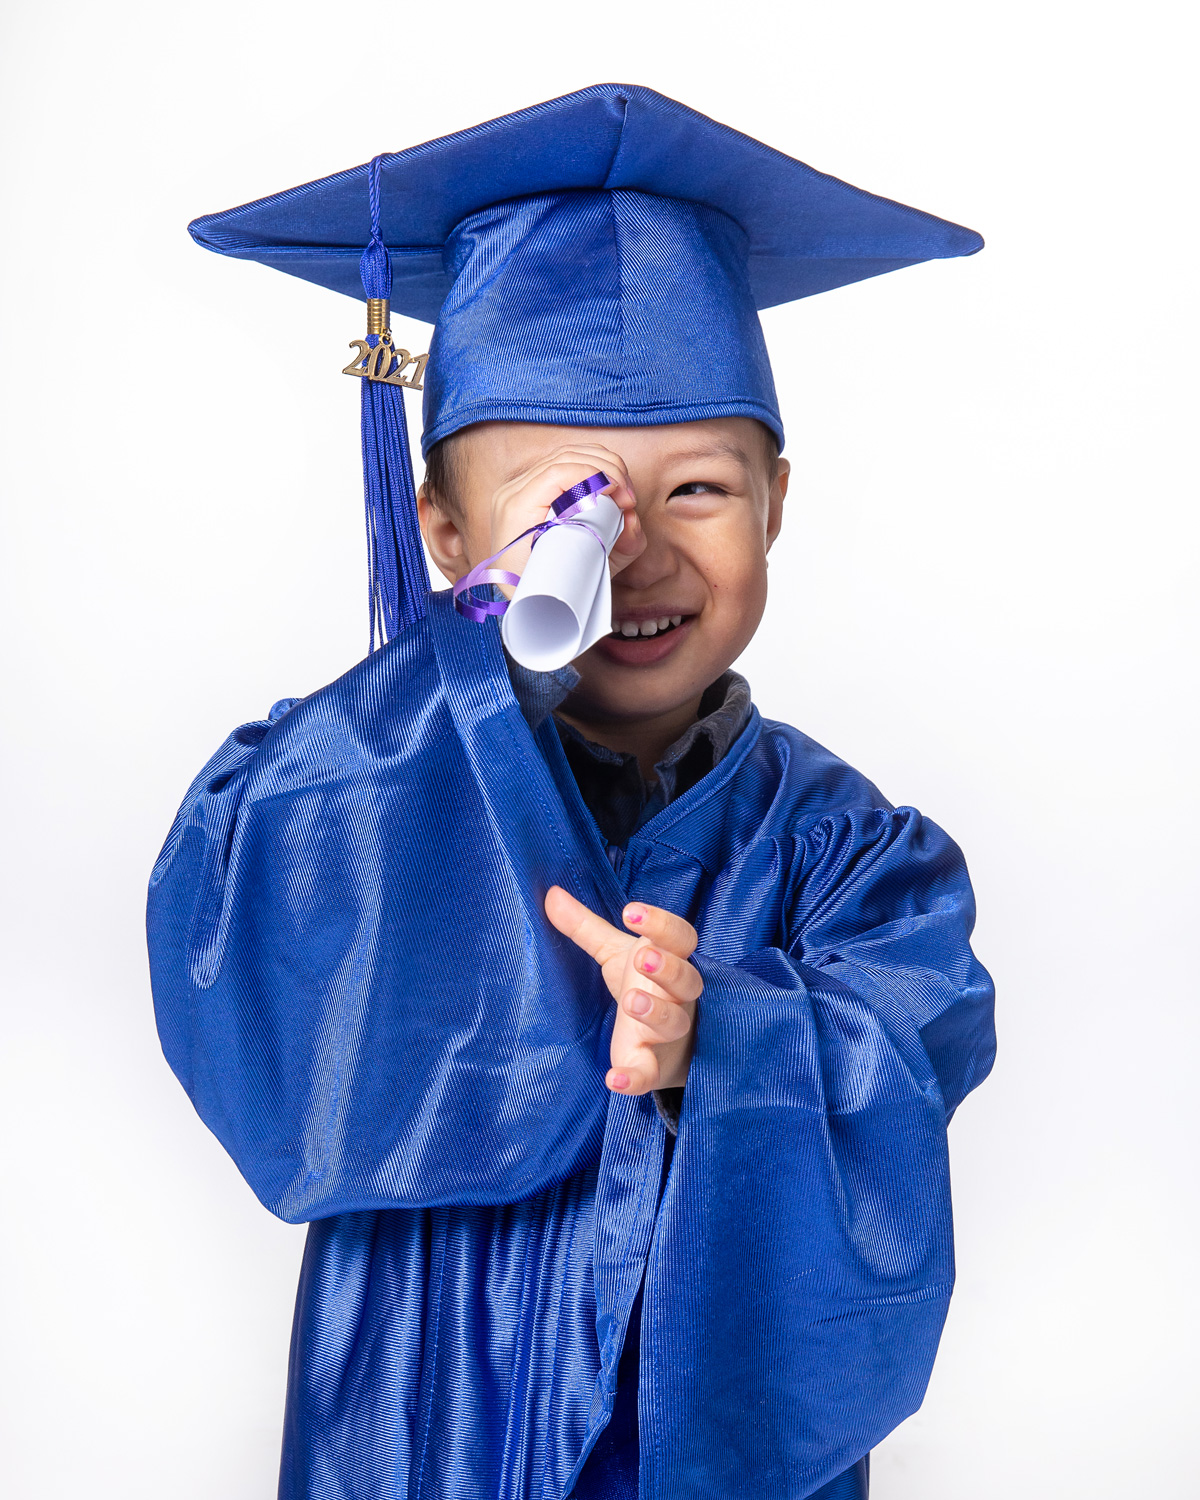 Little boy in cap and gown